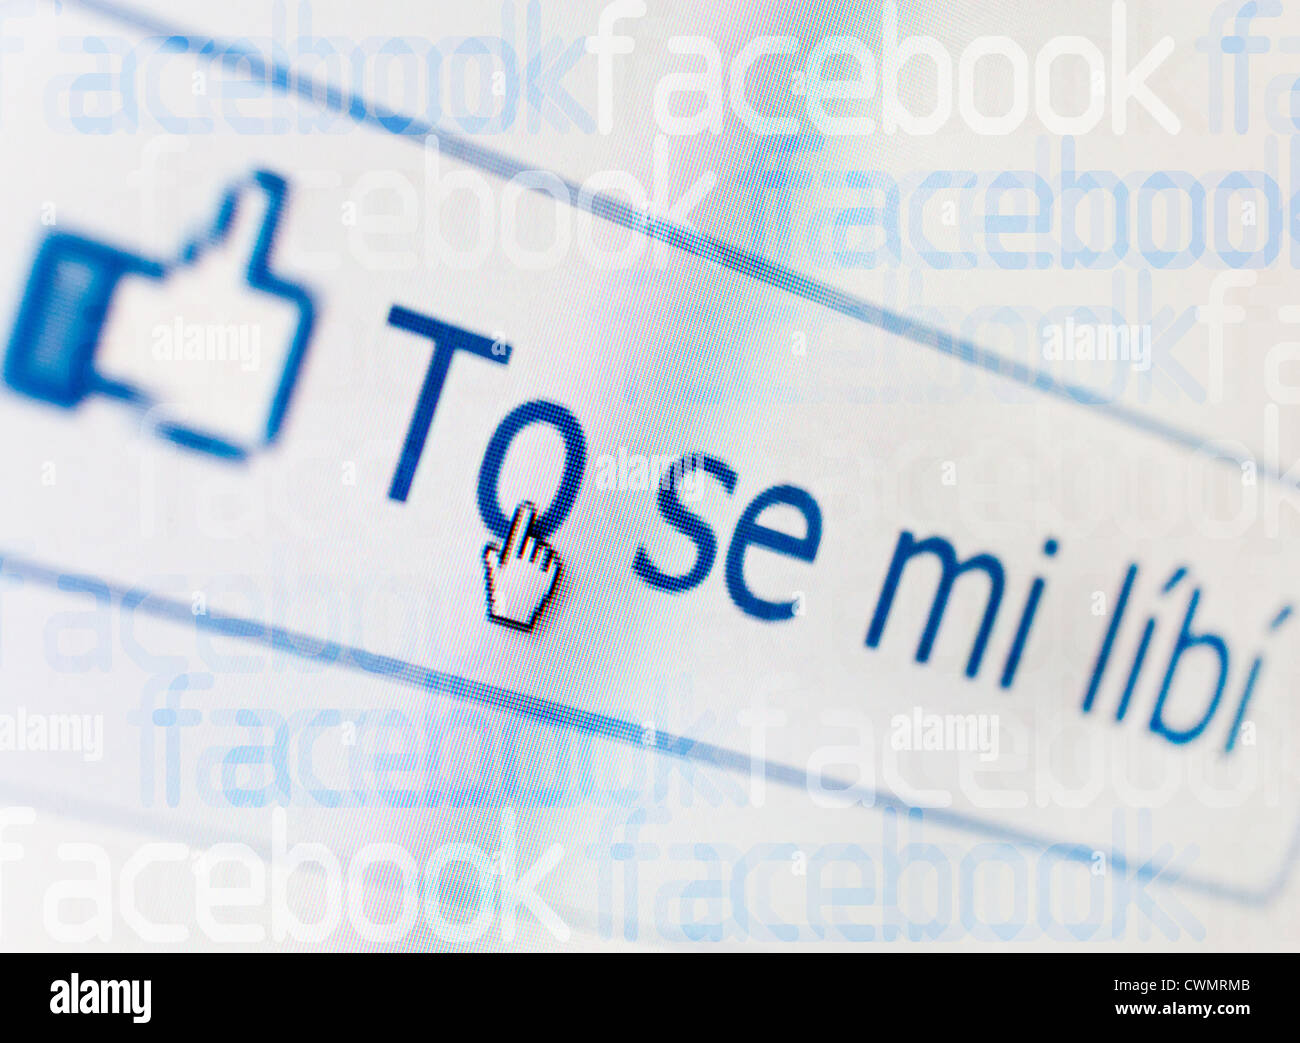 Czech internet - search in facebook - like it button - Stock Image